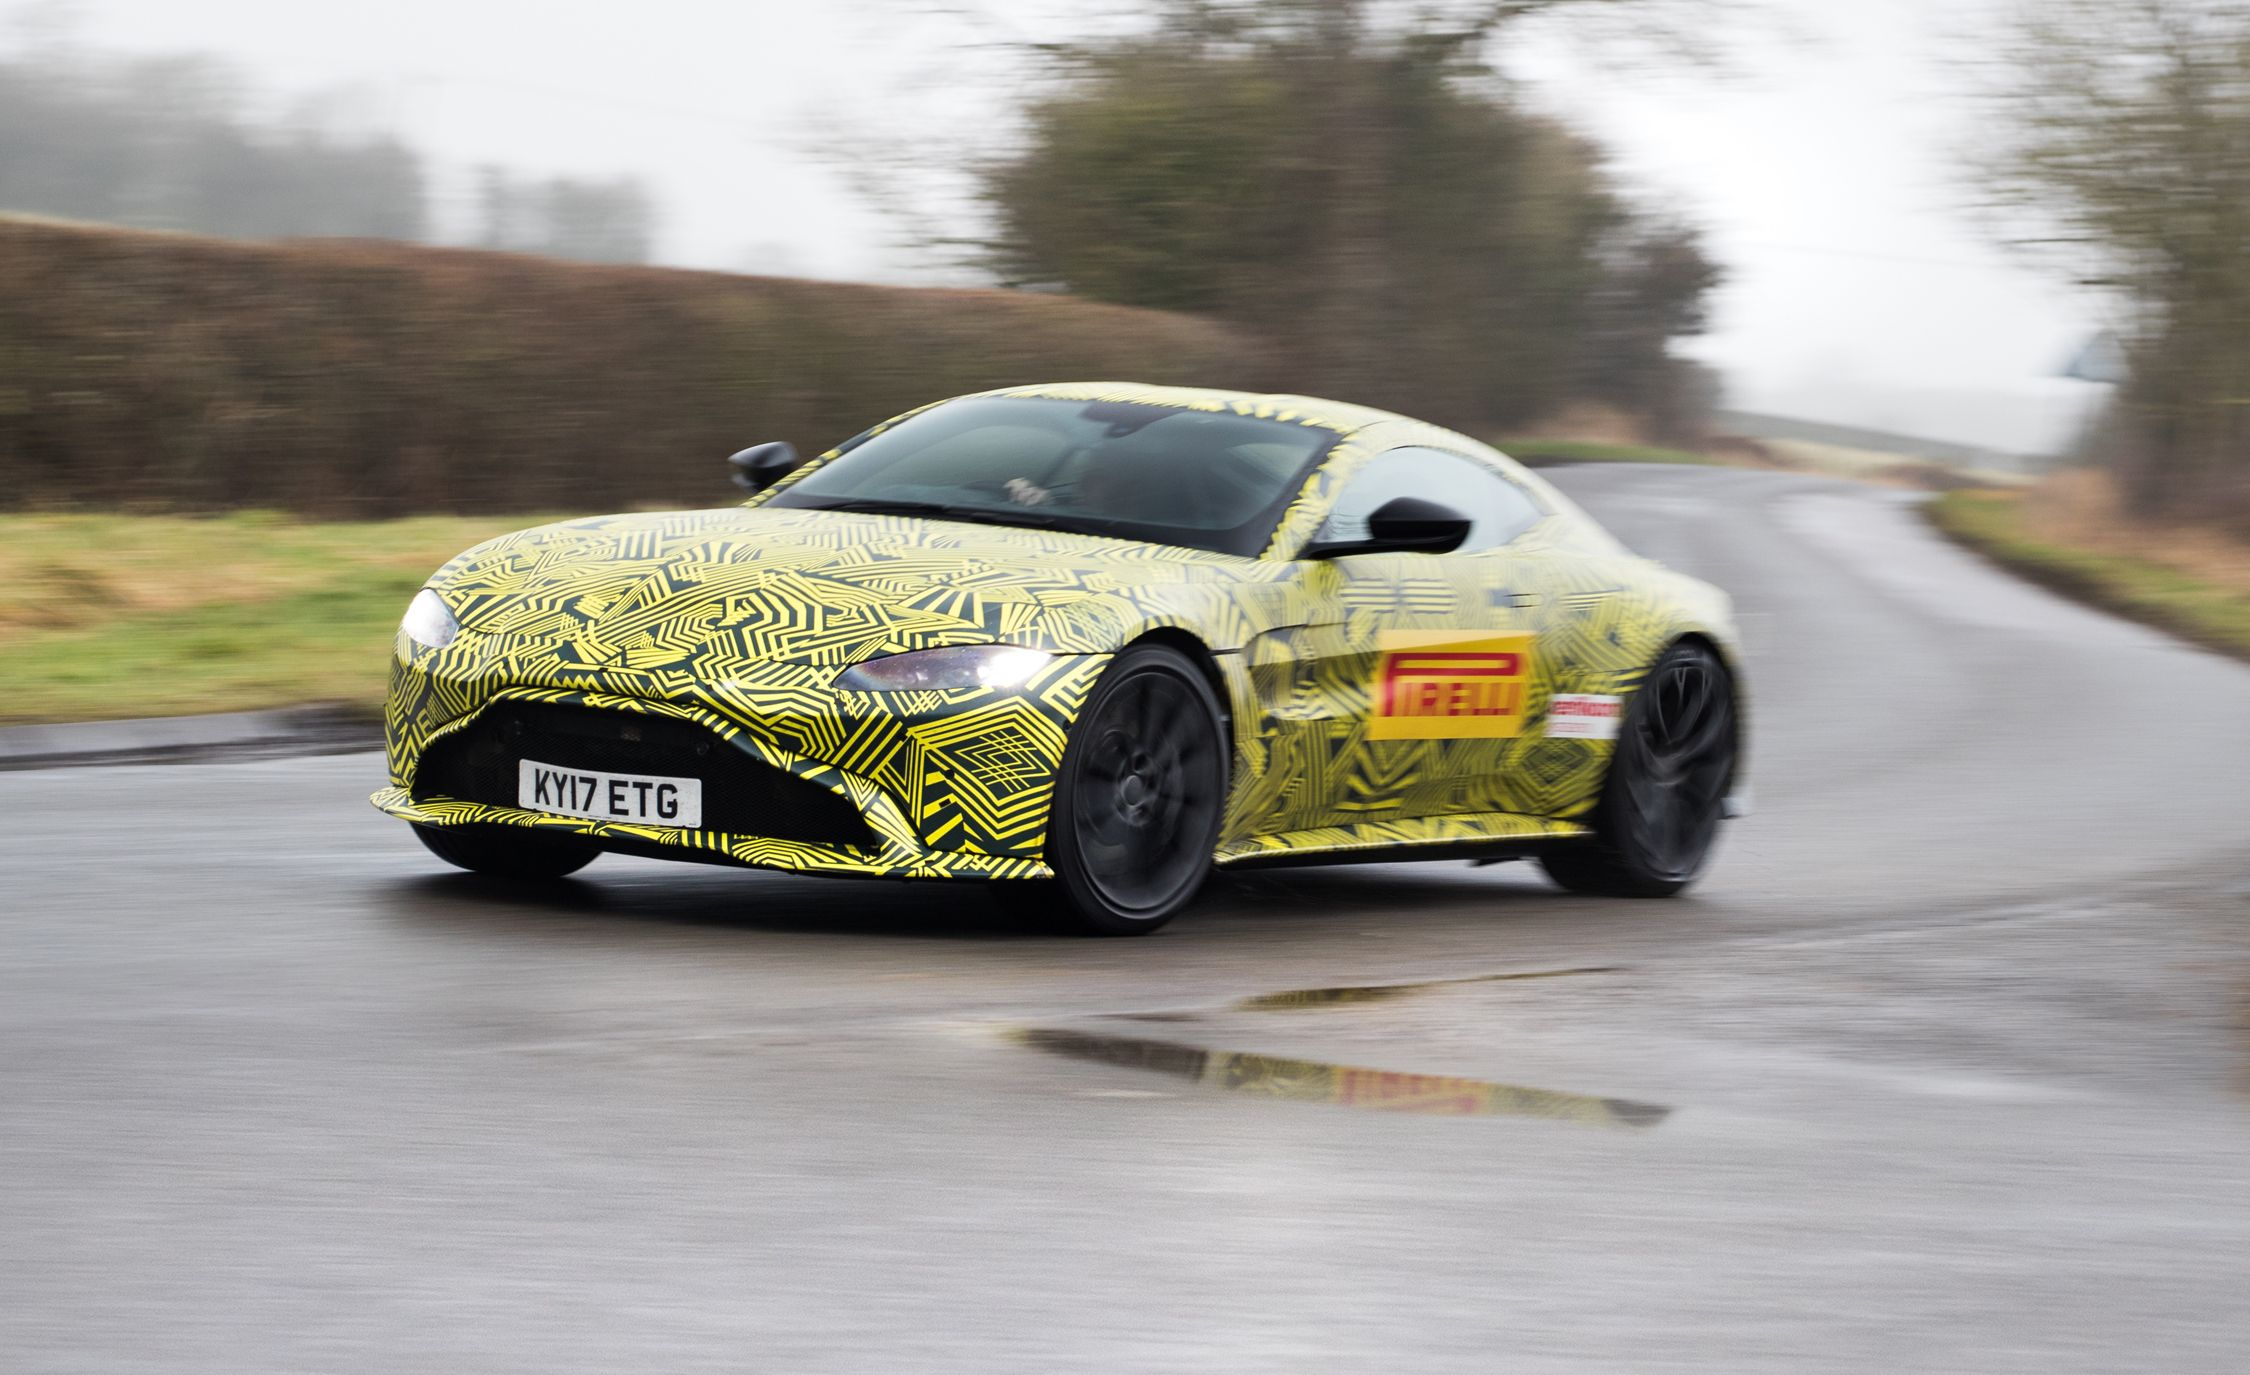 2019 Aston Martin Vantage: We Slide Behind the Wheel of a Prototype